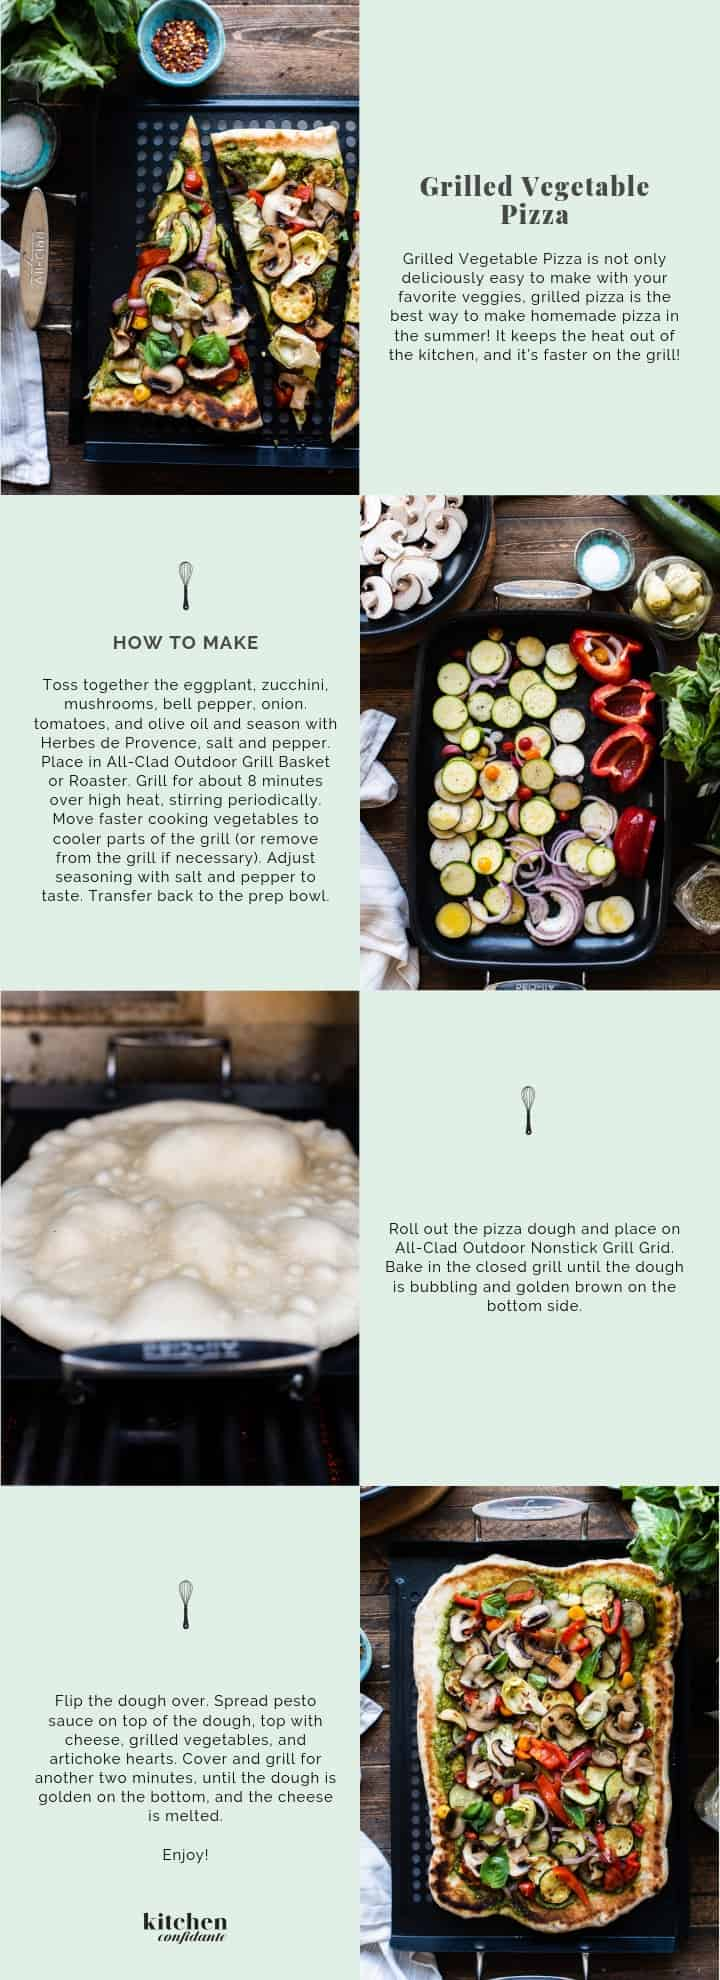 Step by step instructions for making Grilled Vegetable Pizza.